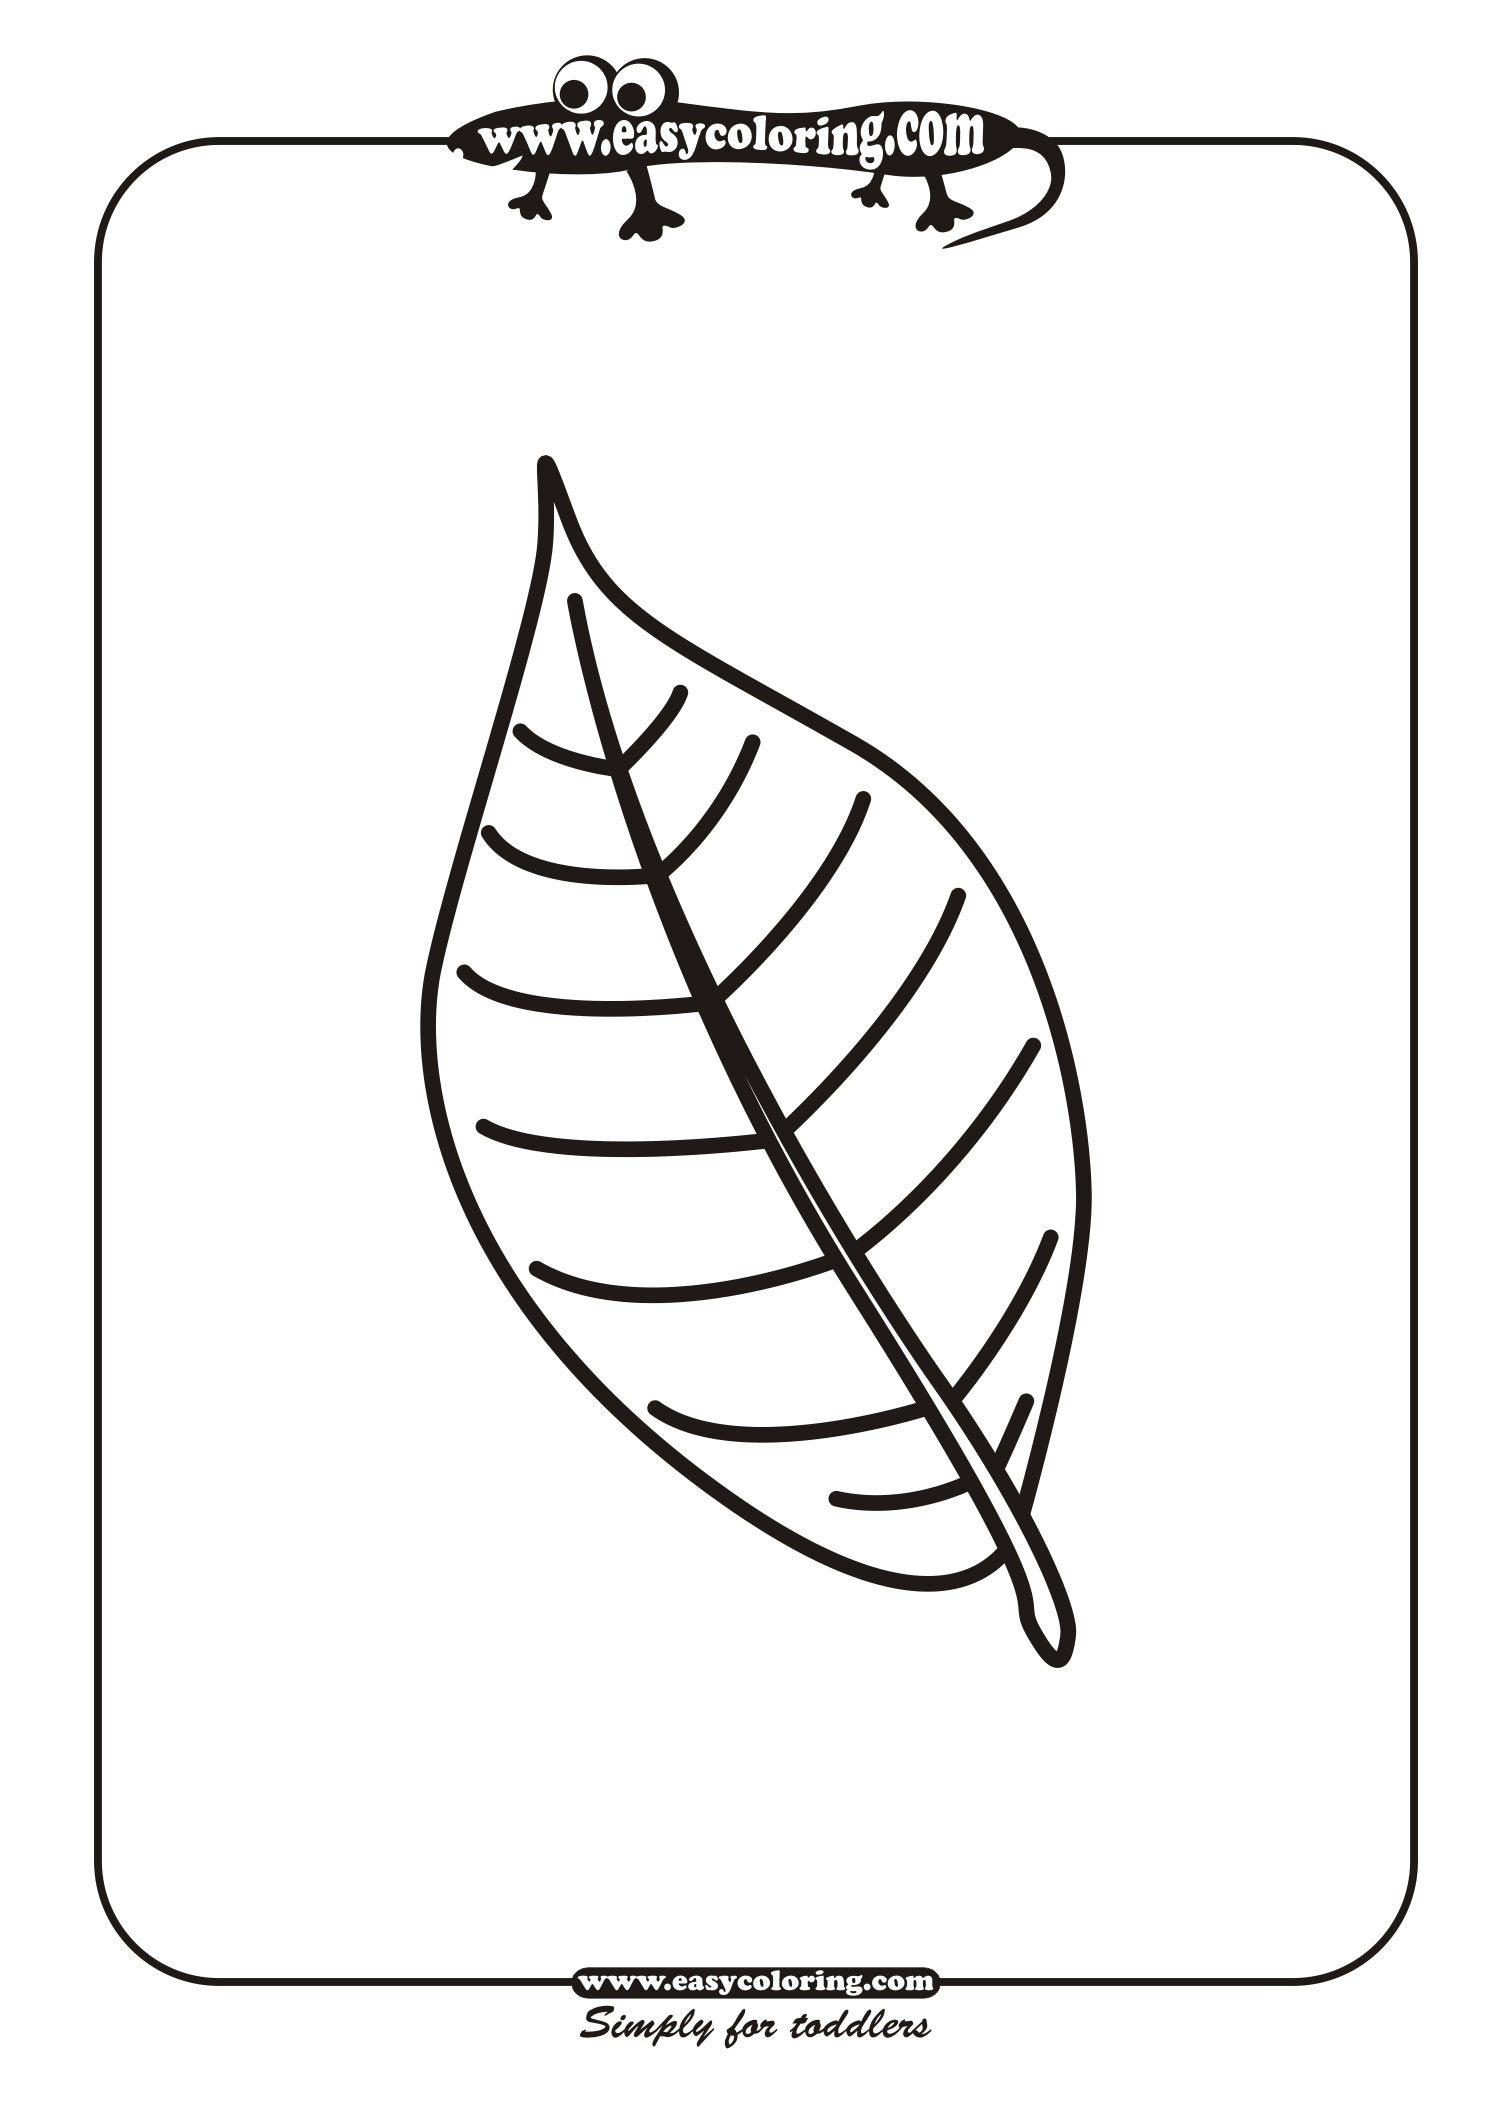 Leaf Two - Simple leafs | Easy coloring pages for toddlers